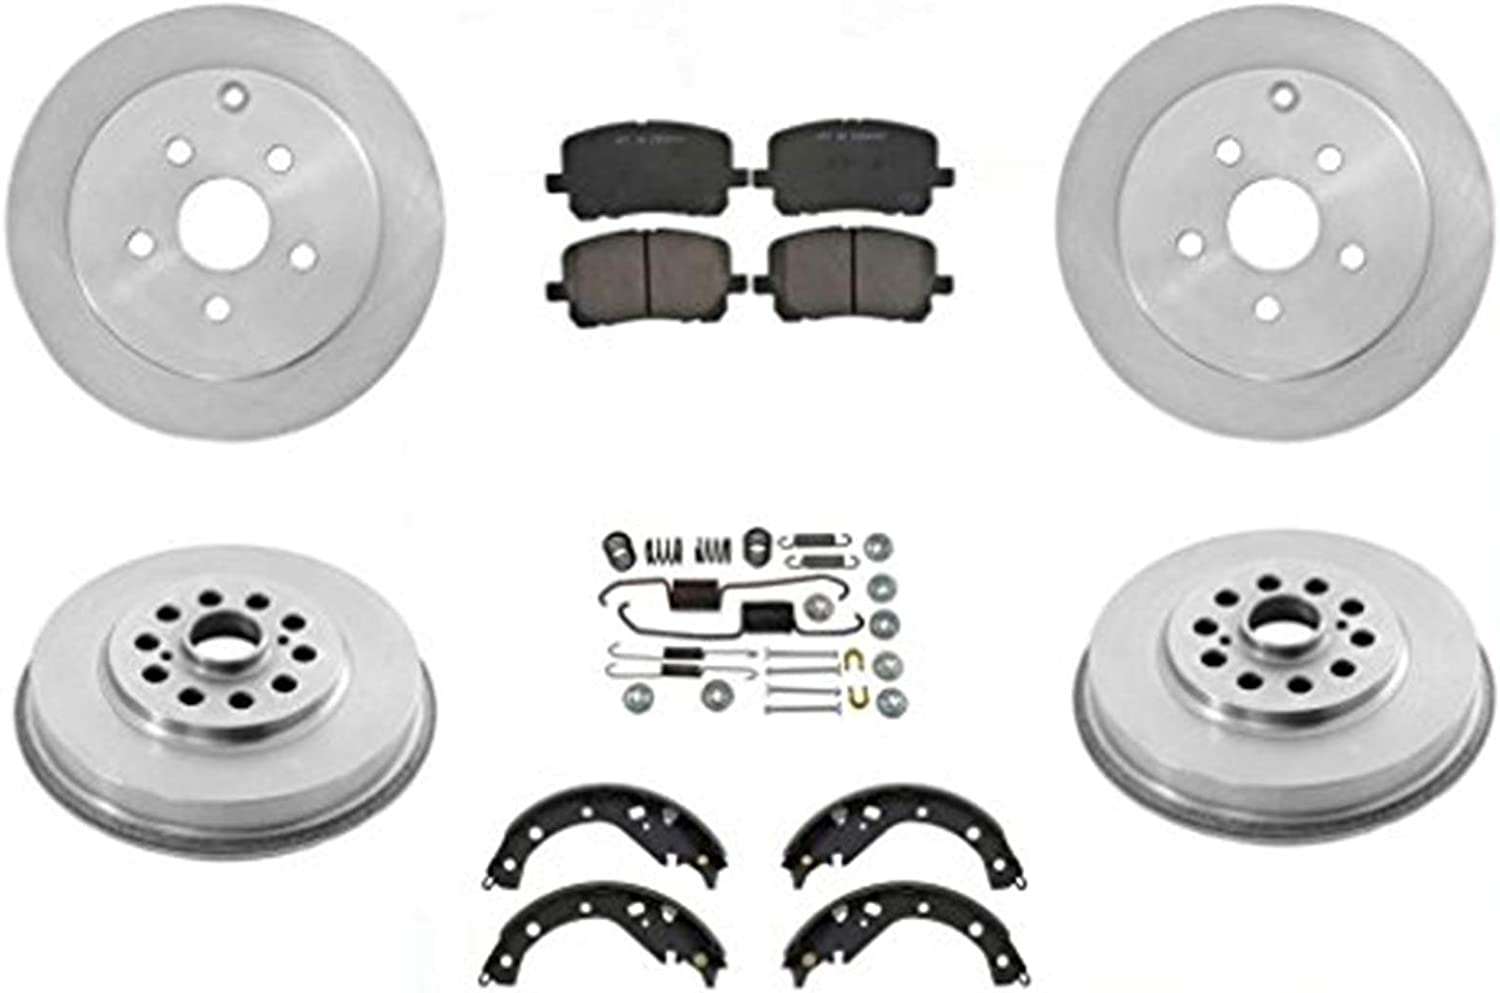 Aveo Without ABS 2 Brake Drum With Rear Bearings /& Brake Shoes Rotors Pads 7Pc